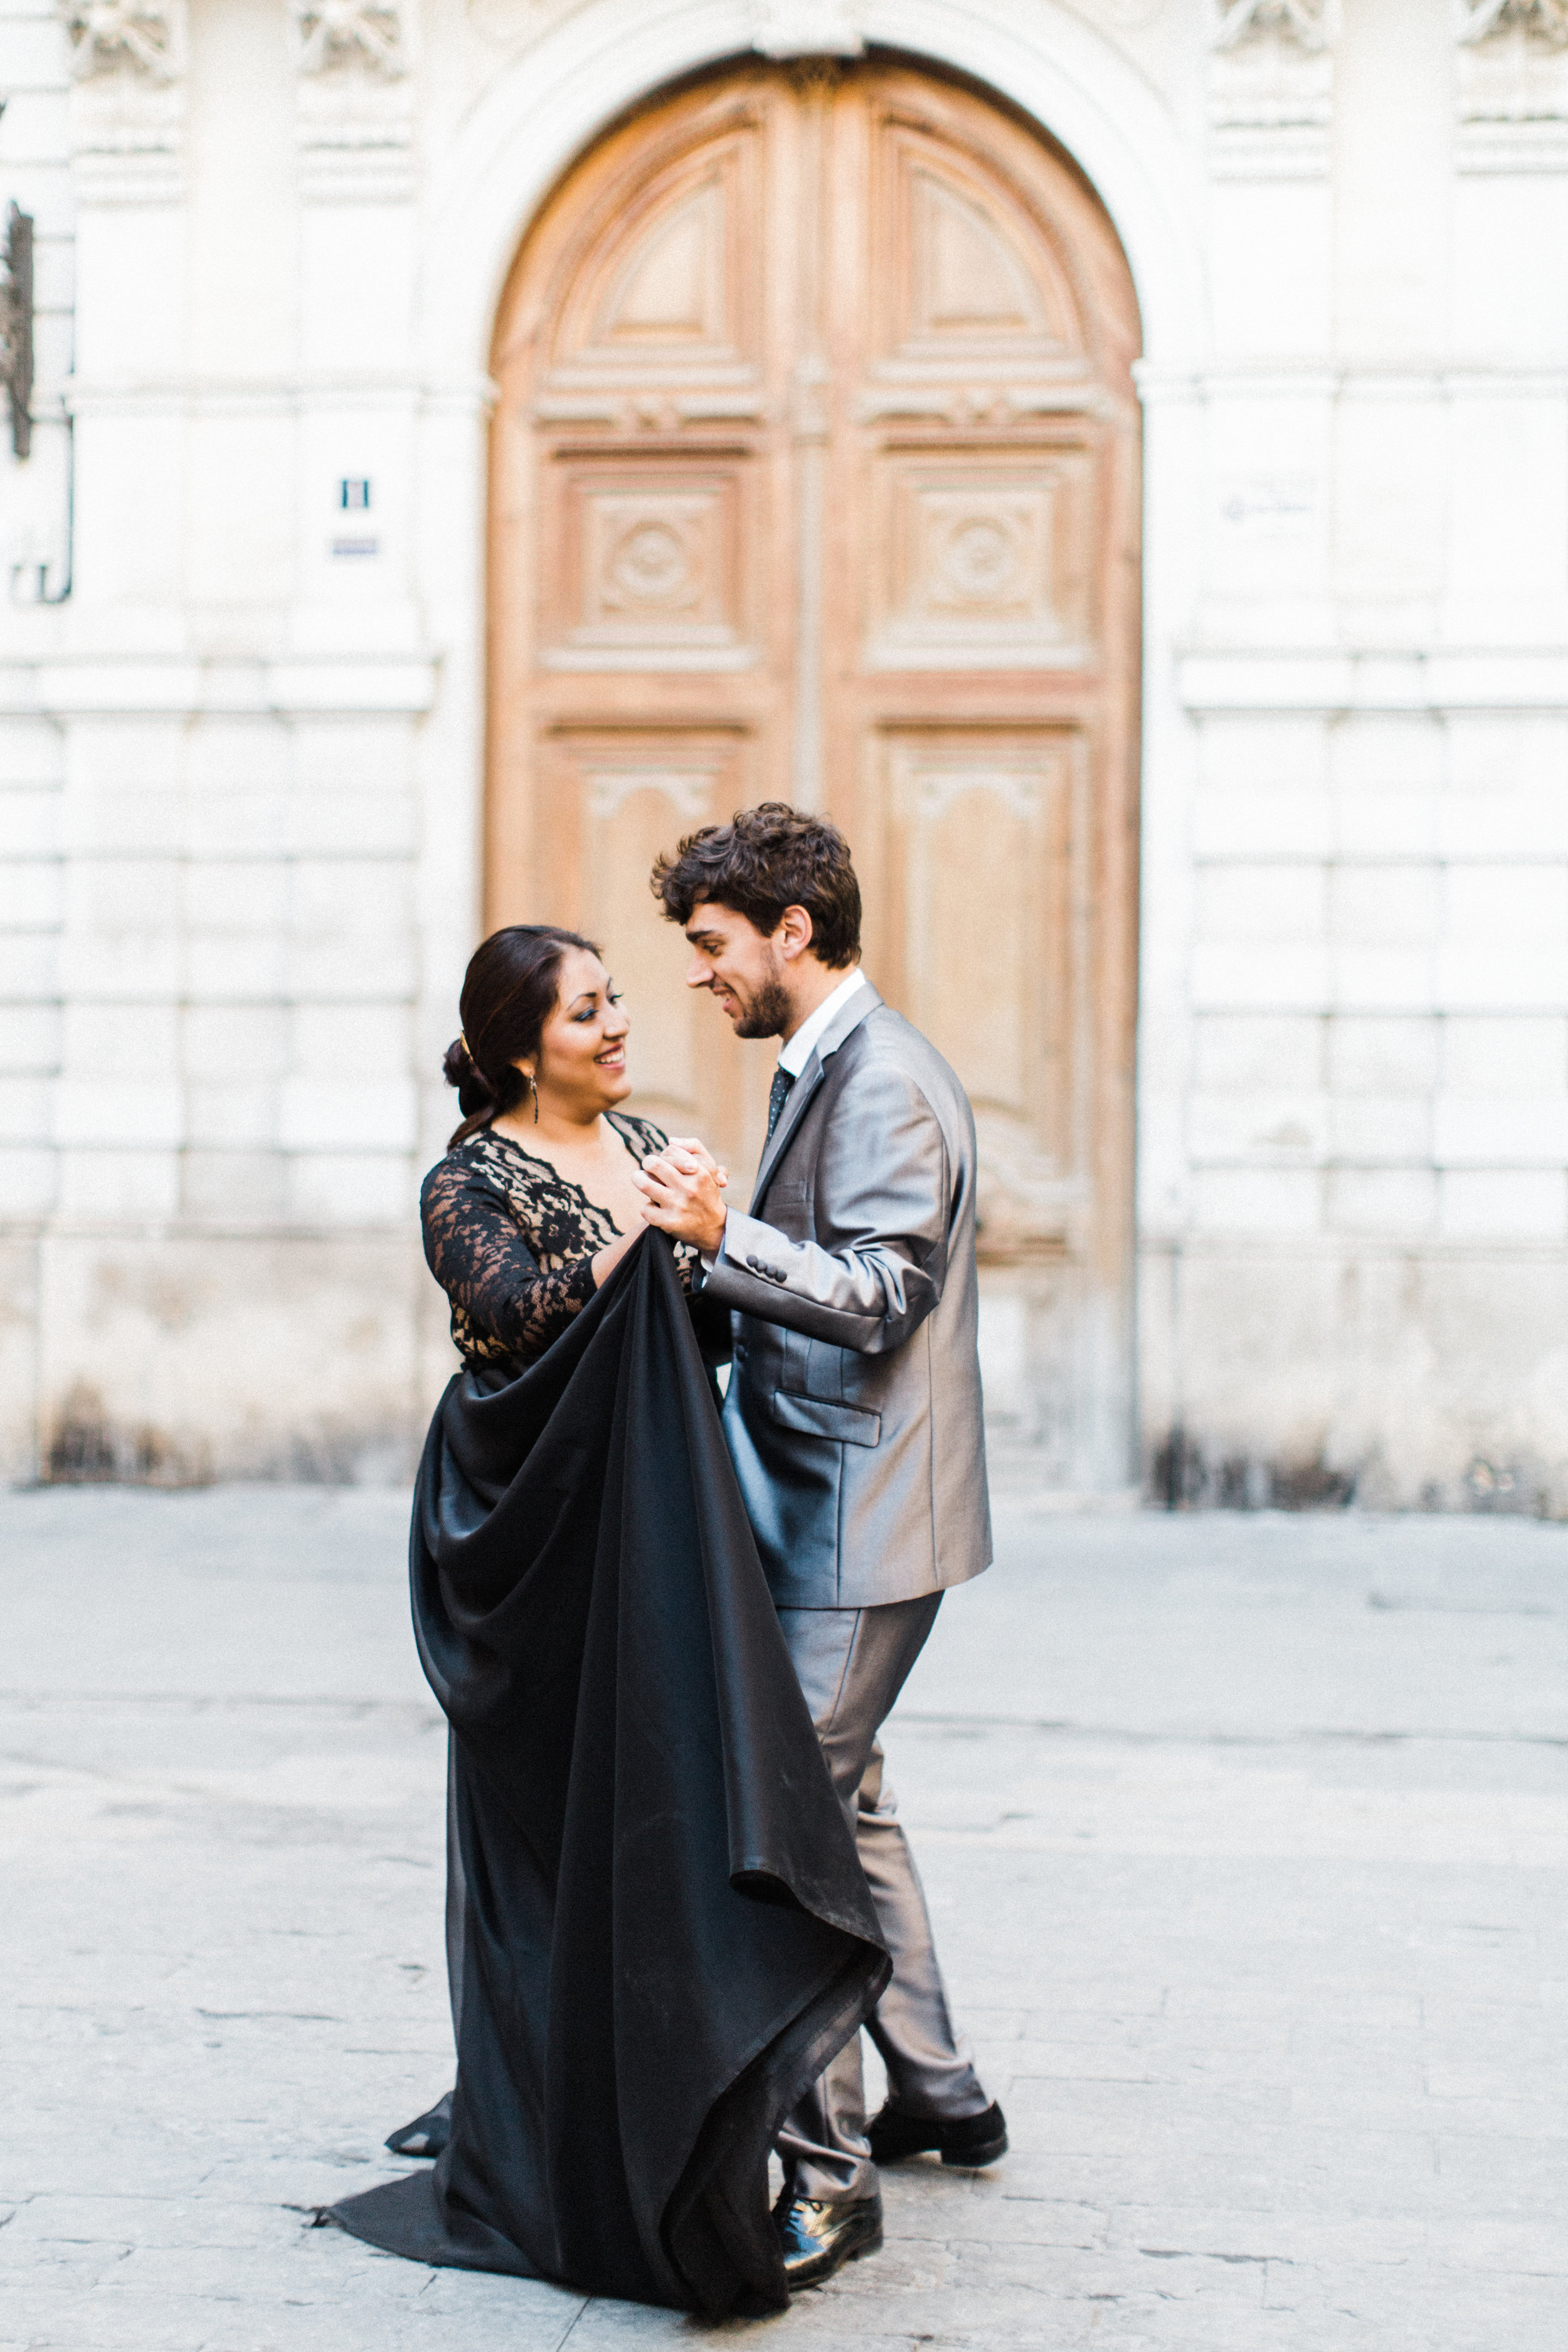 Four Corners Photography Gerson and Jenny Valencia Spain-43.jpg